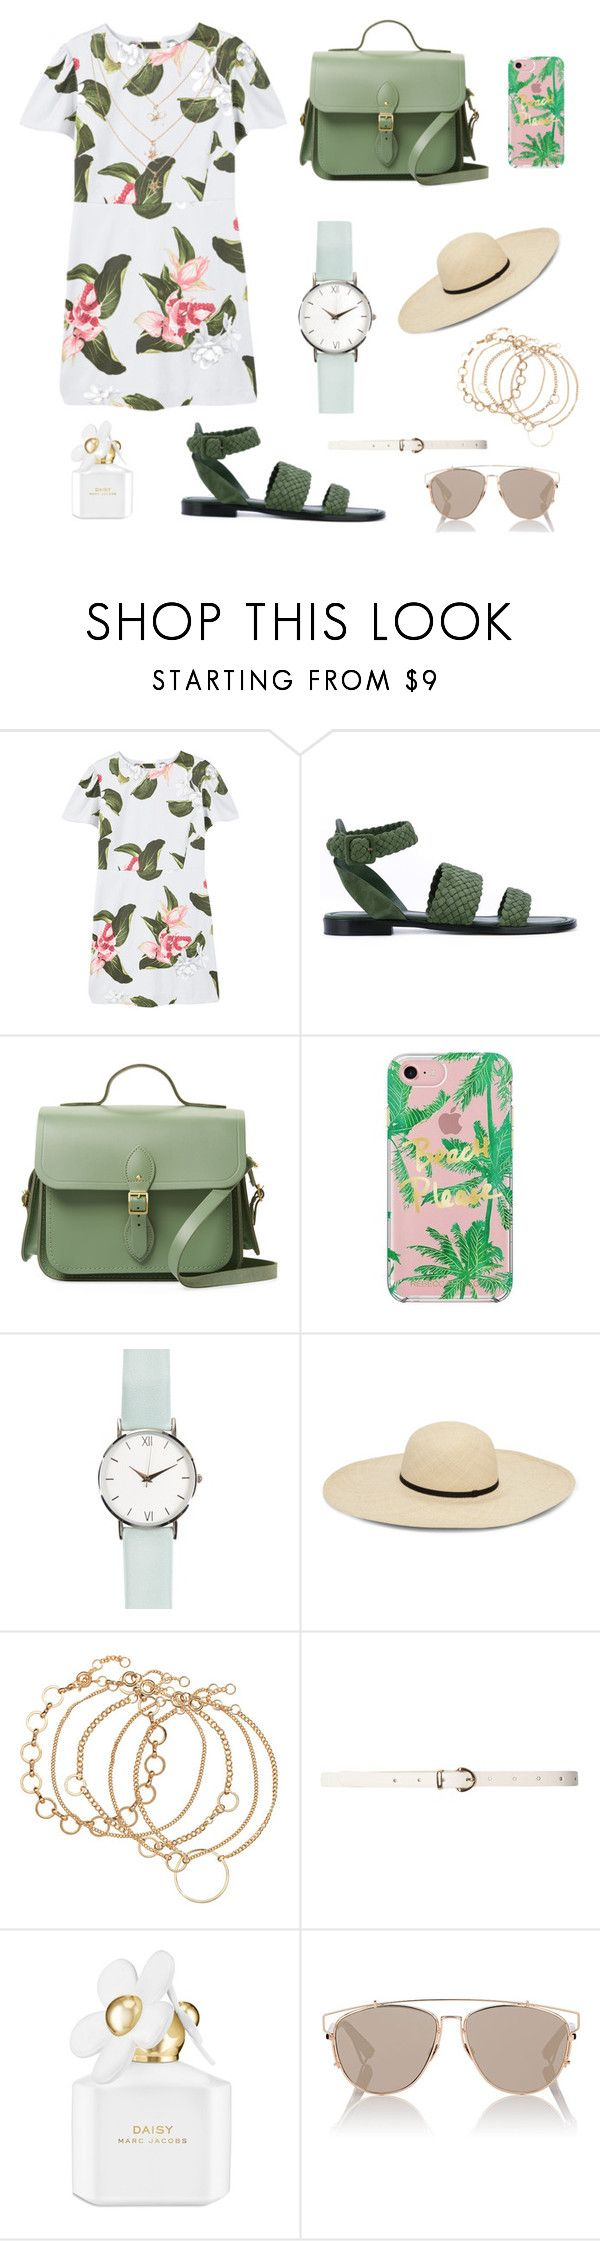 """Spring set"" by waha-tutu ❤ liked on Polyvore featuring MANGO, Paul Andrew, The Cambridge Satchel Company, Rebecca Minkoff, Dorothy Perkins, Marc Jacobs and Christian Dior"